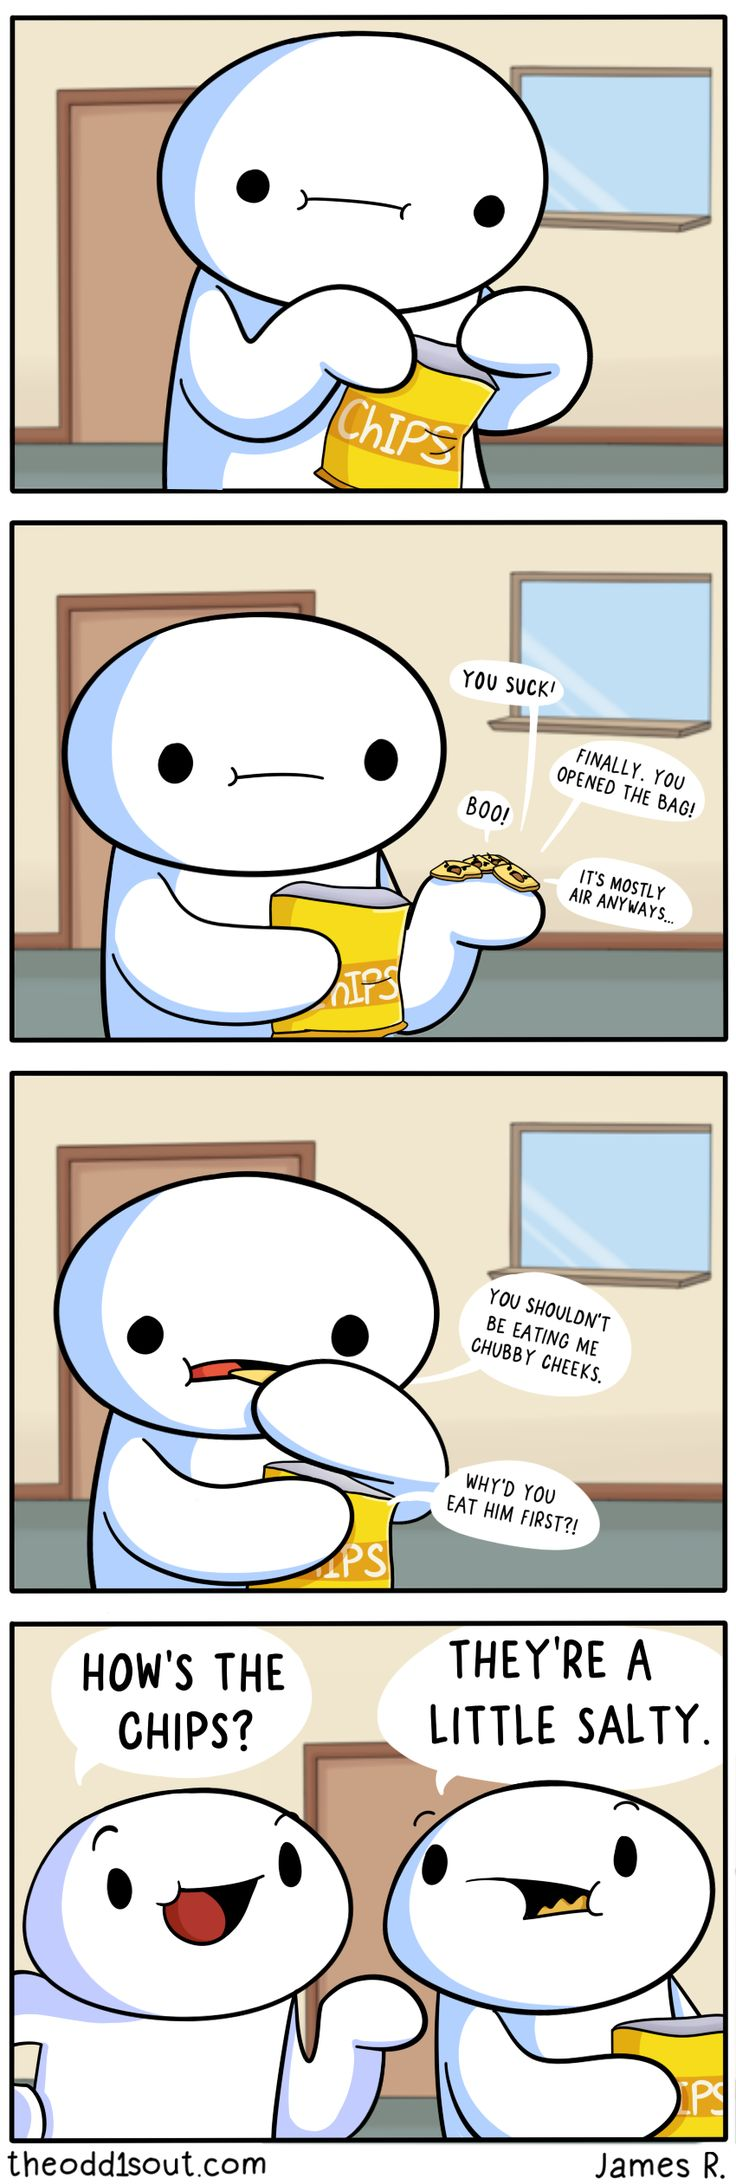 Theodd1sout :: How Are the Chips?  | Tapas Comics - image 1